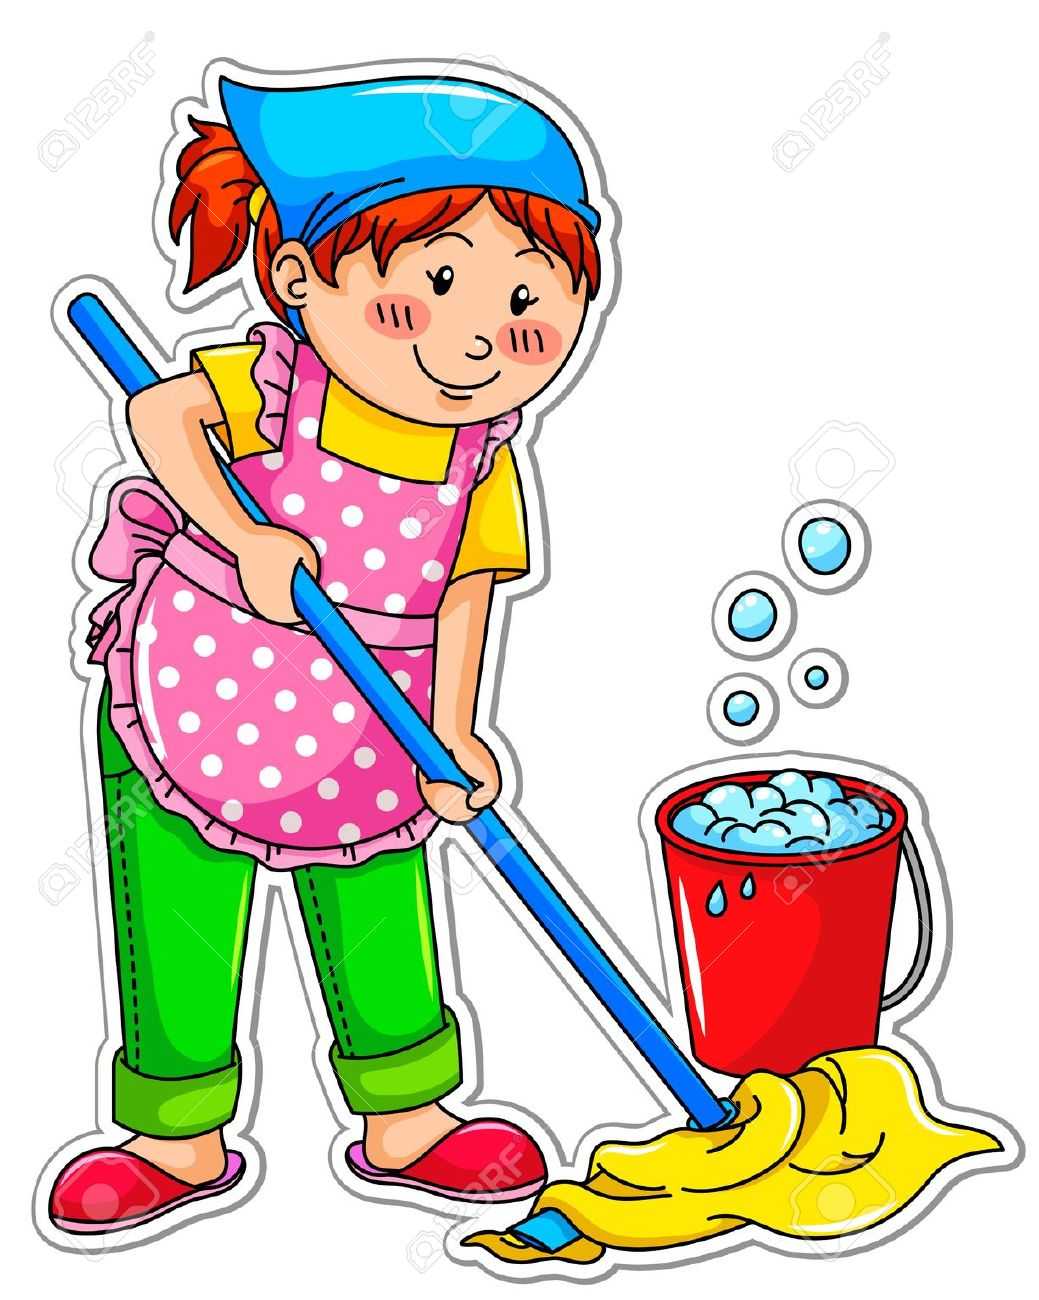 Mopping the floor clipart.